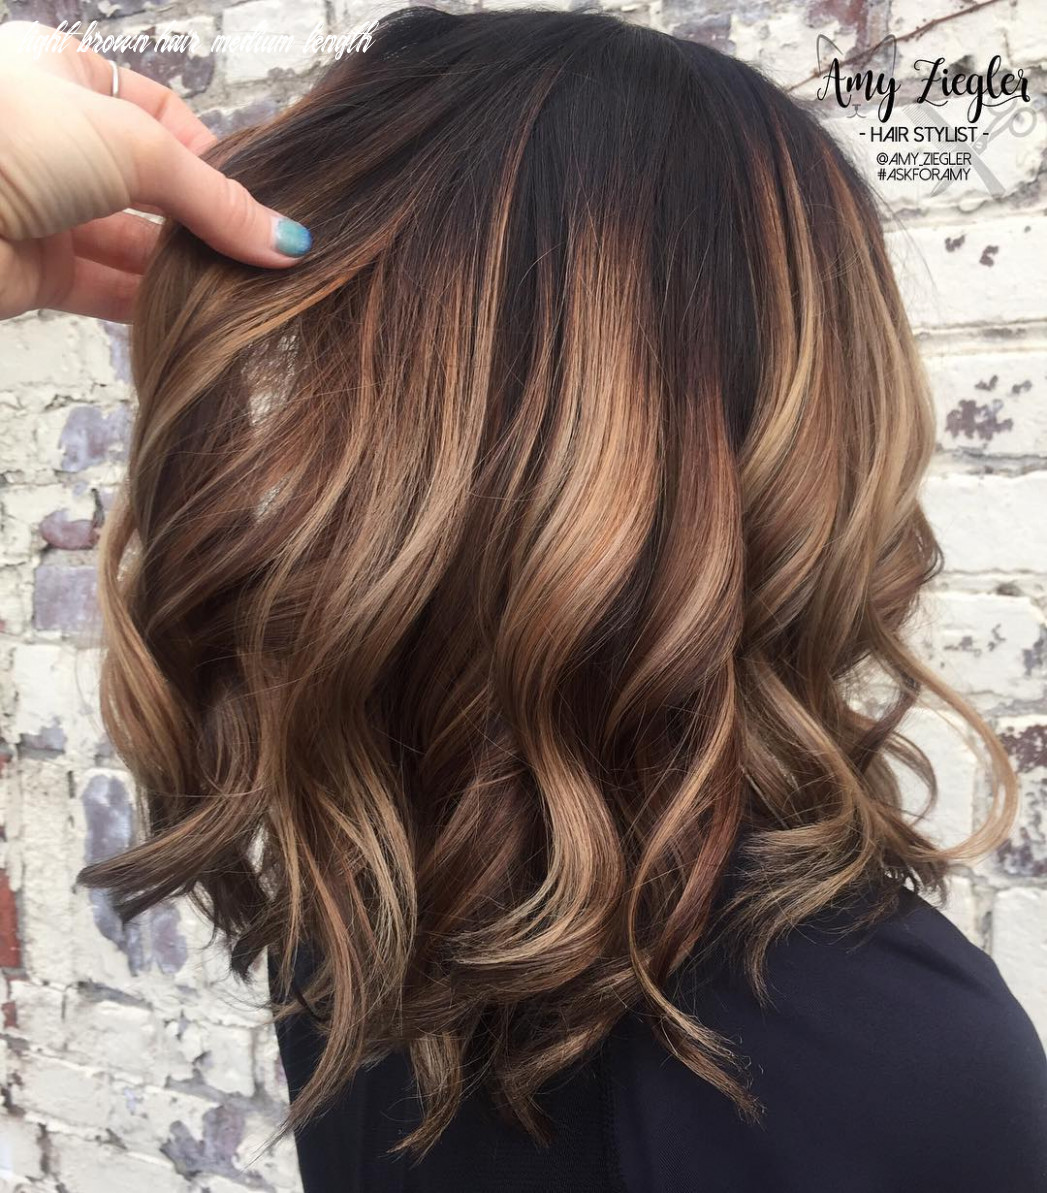 11 trendy brown balayage hairstyles for medium length hair 11 light brown hair medium length